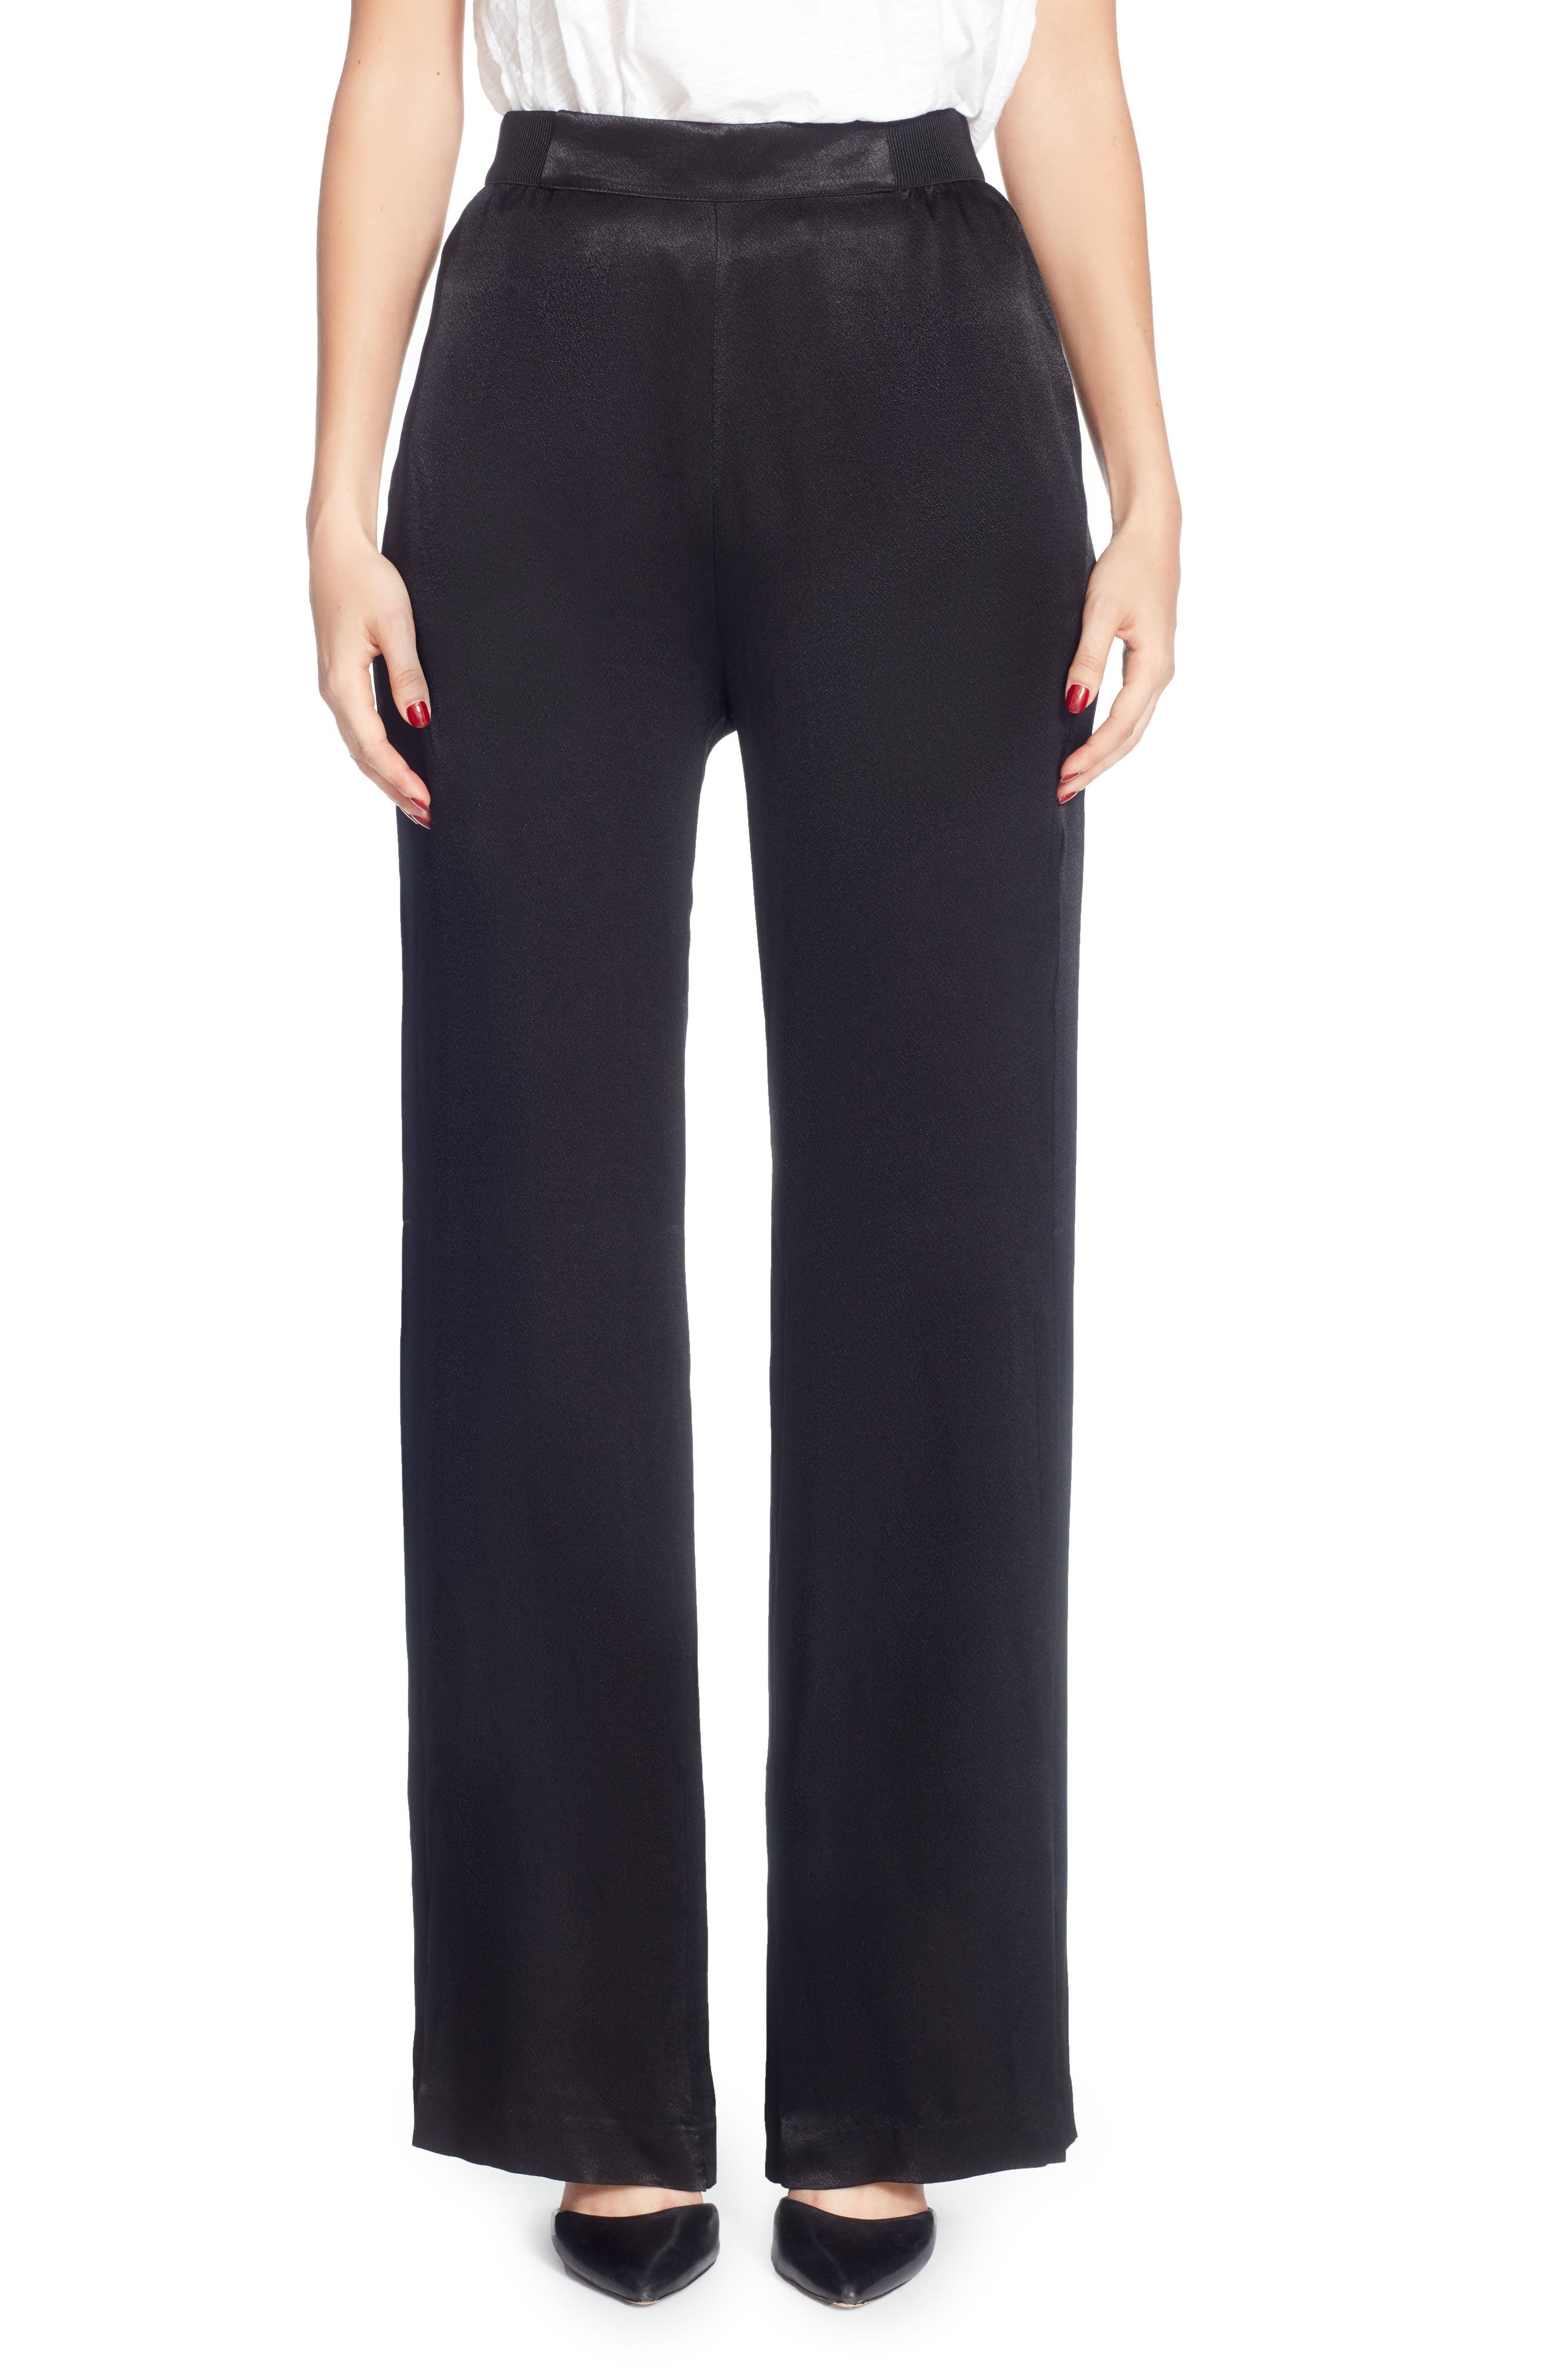 Lief Wide-Leg Pants,                         Main,                         color, Black